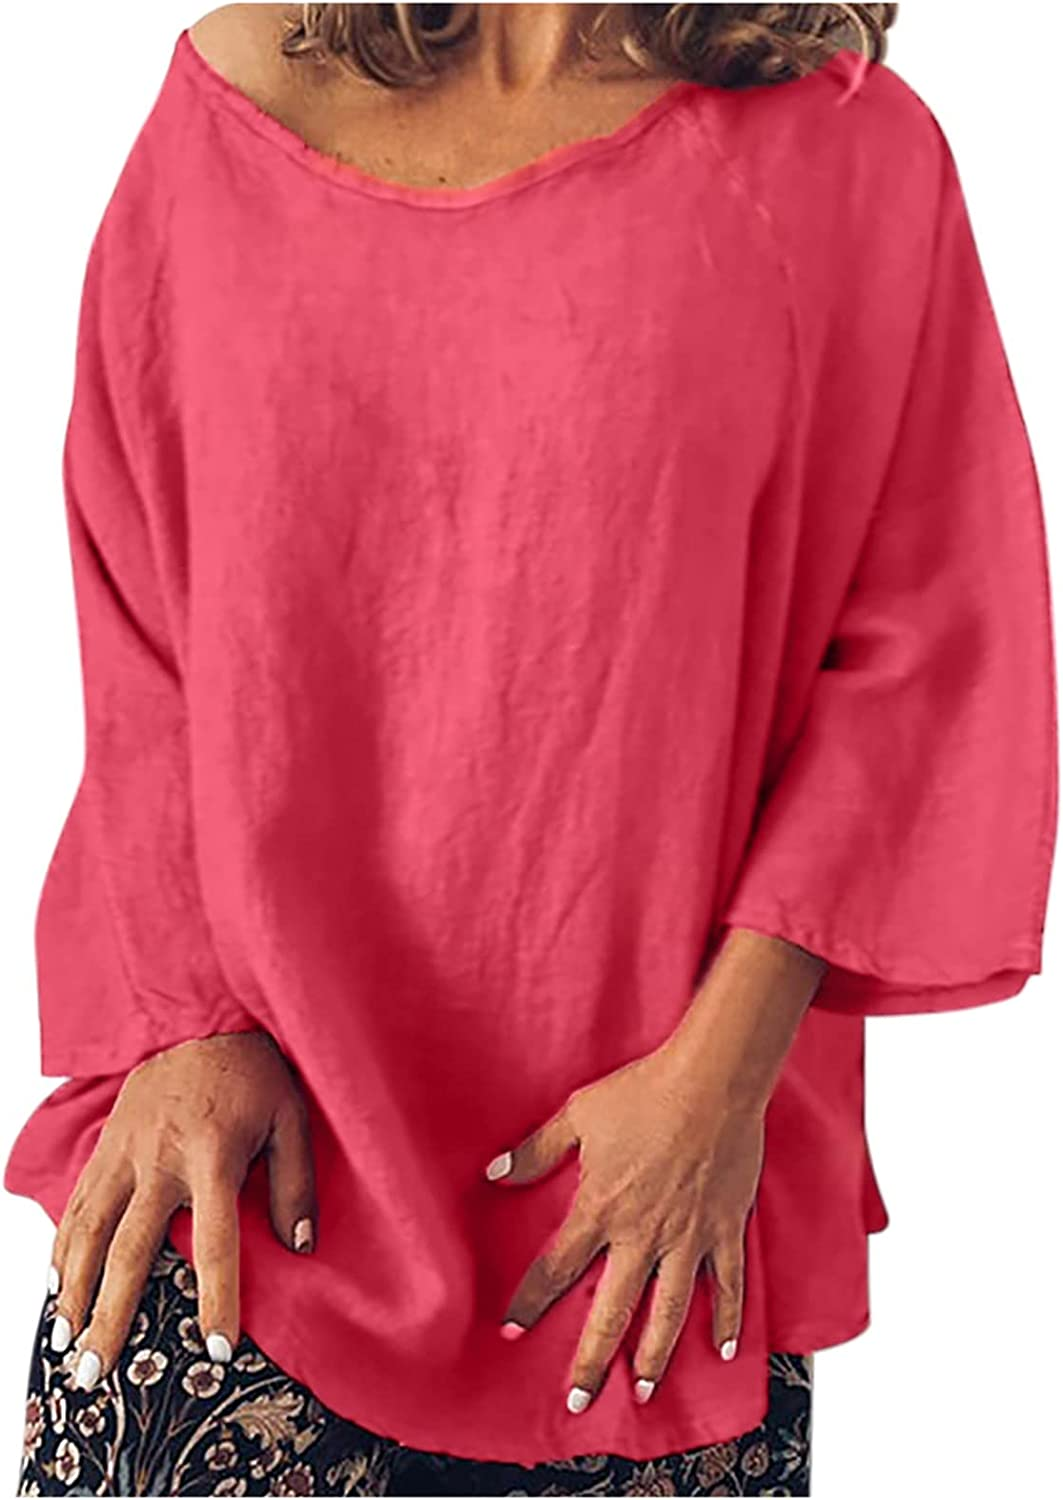 Crewneck Pullover for Women Long Sleeve Loose Aesthetic Comfy Linen Casual Tops, Oversized Sweatshirt for Women Trendy